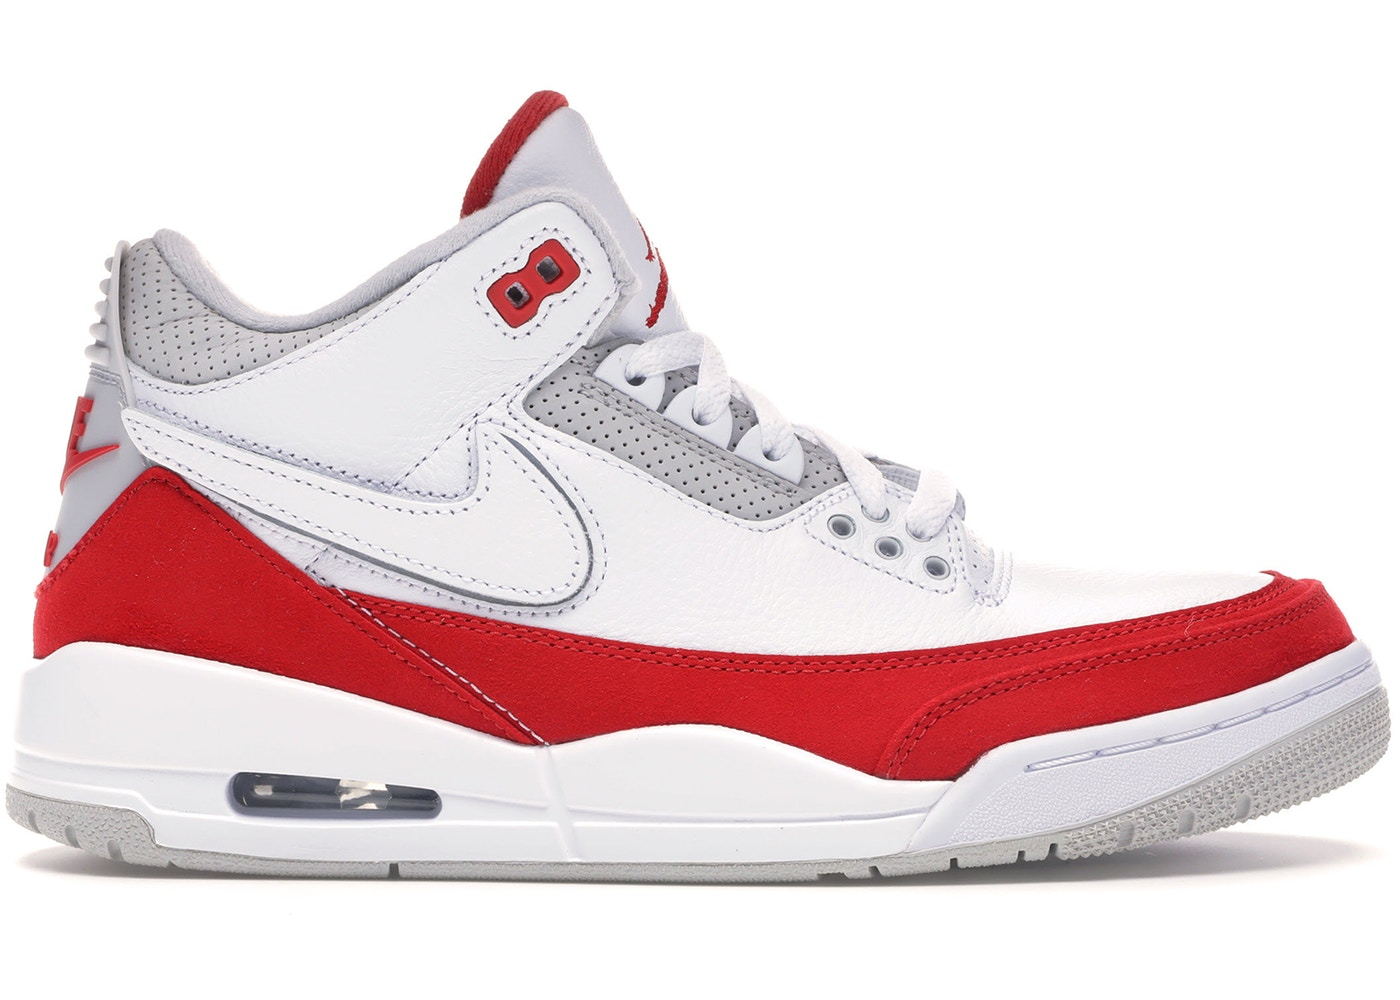 outlet store 65f99 e5ade Buy Air Jordan 3 Shoes & Deadstock Sneakers